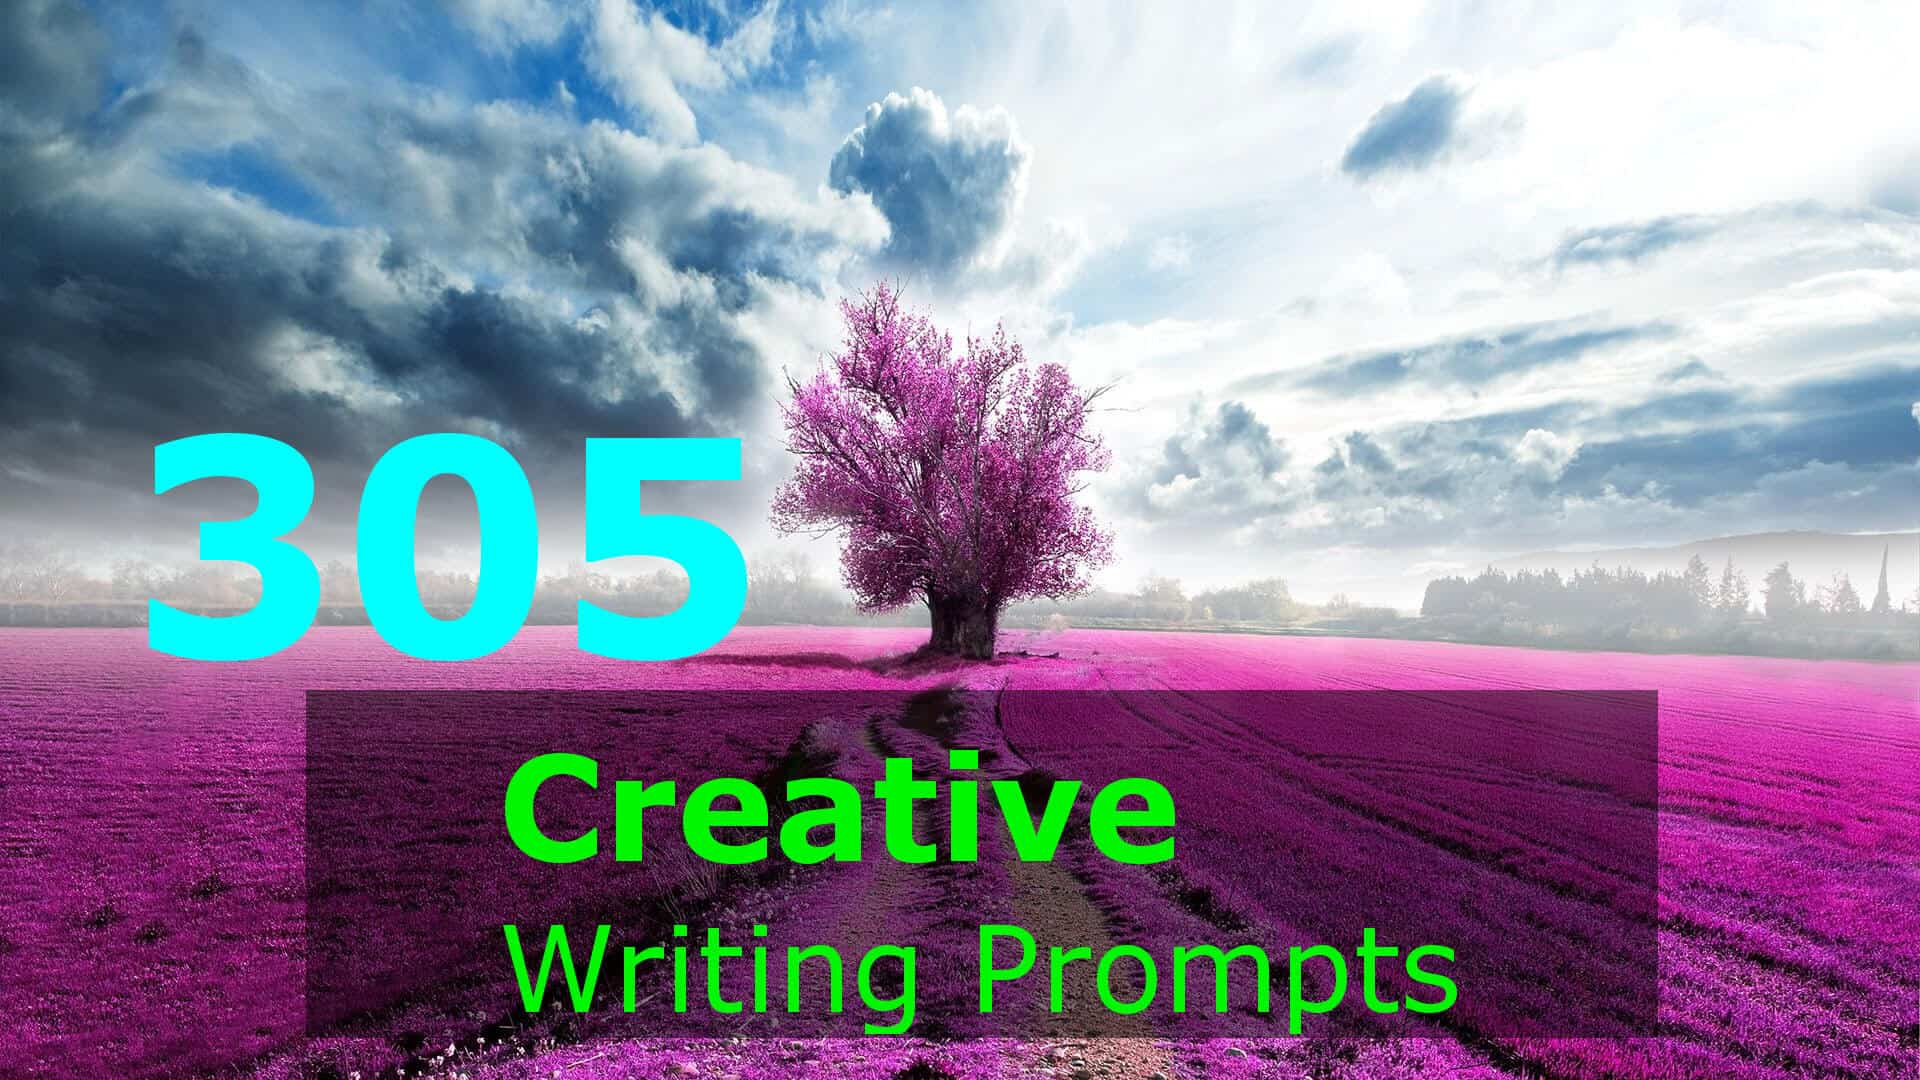 305 Creative Writing Prompts For Homeschoolers